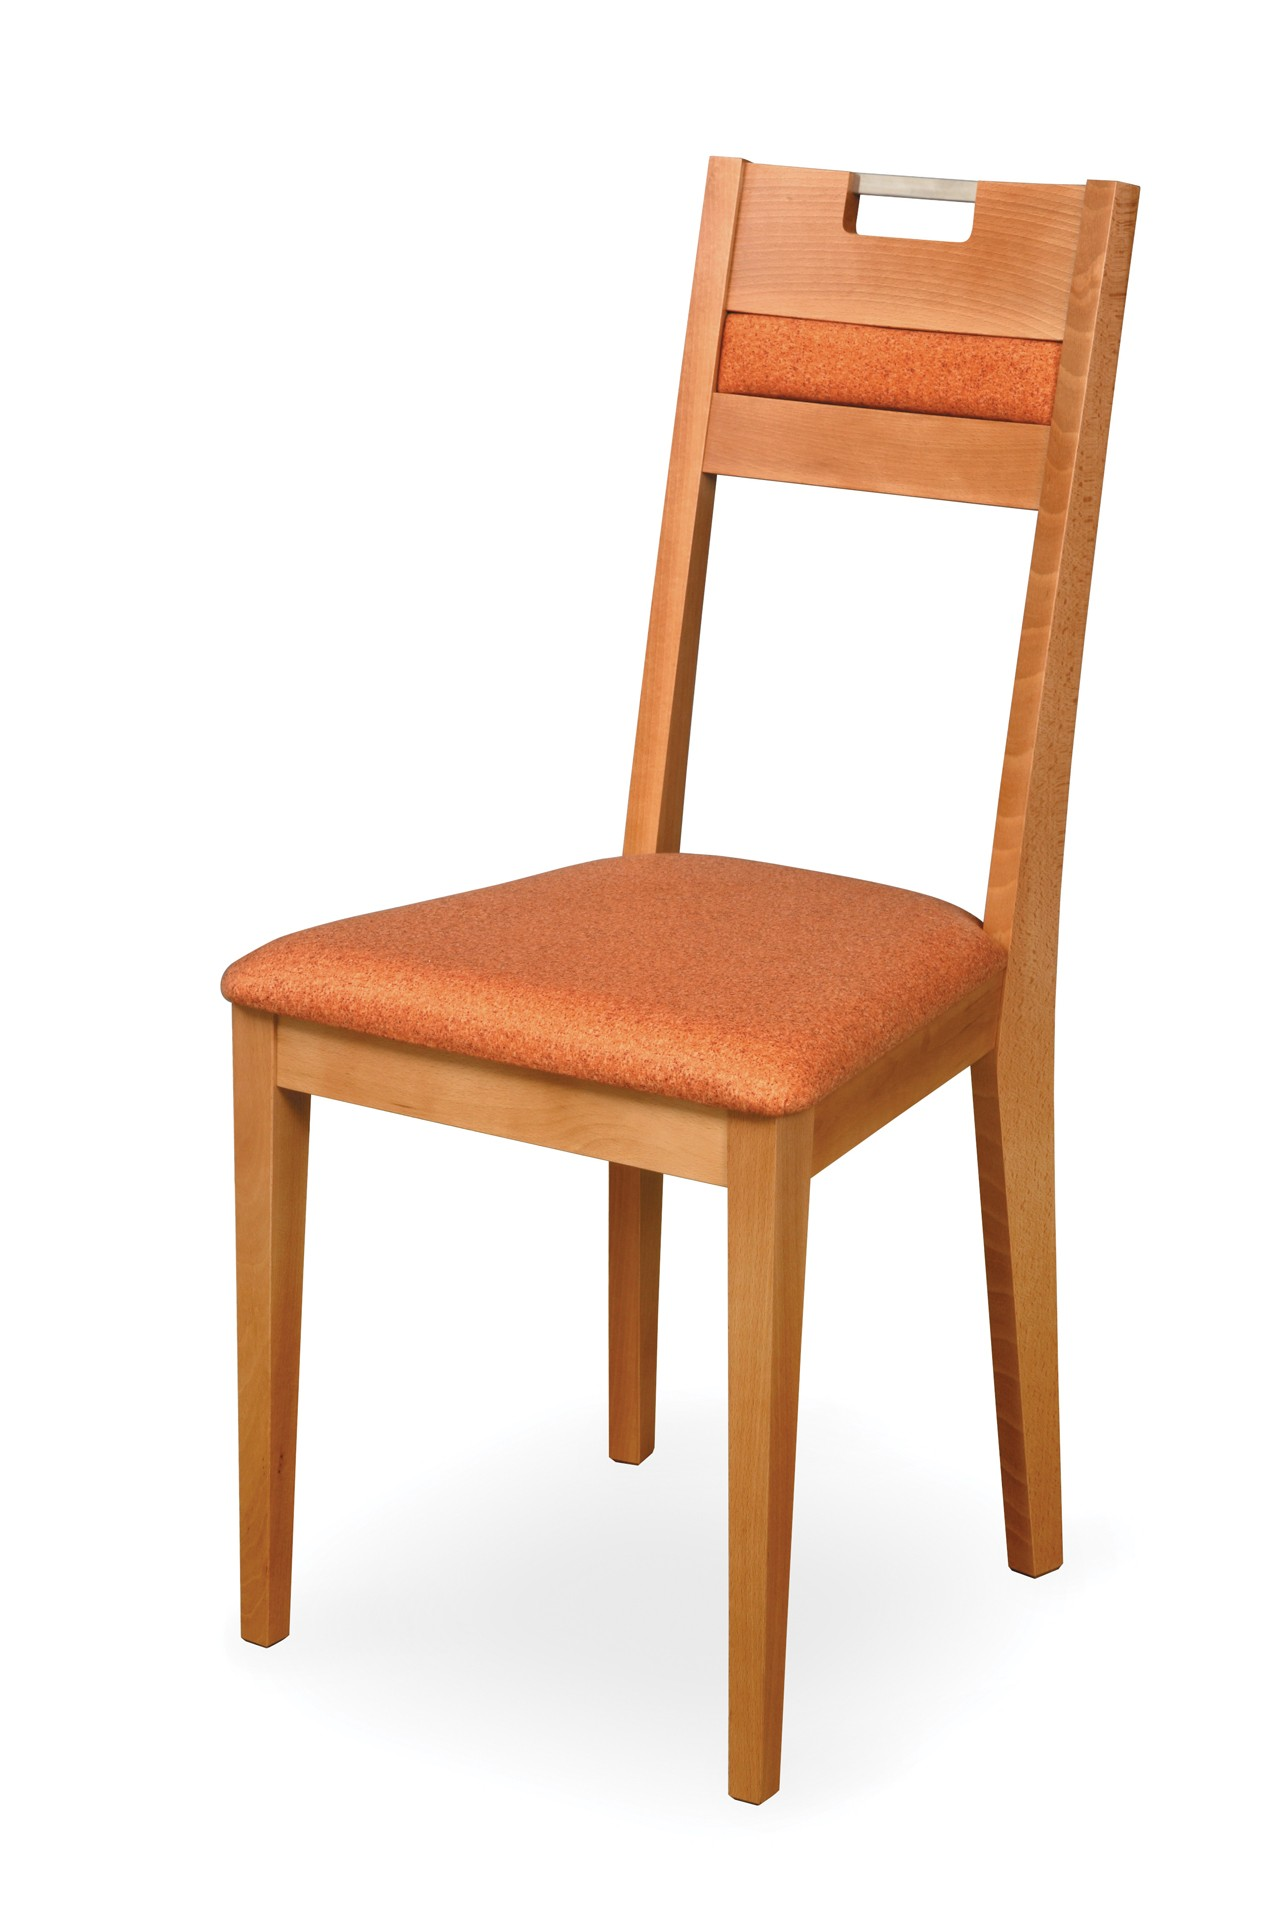 VENGE with upholstered seat, partially upholstered back and handle